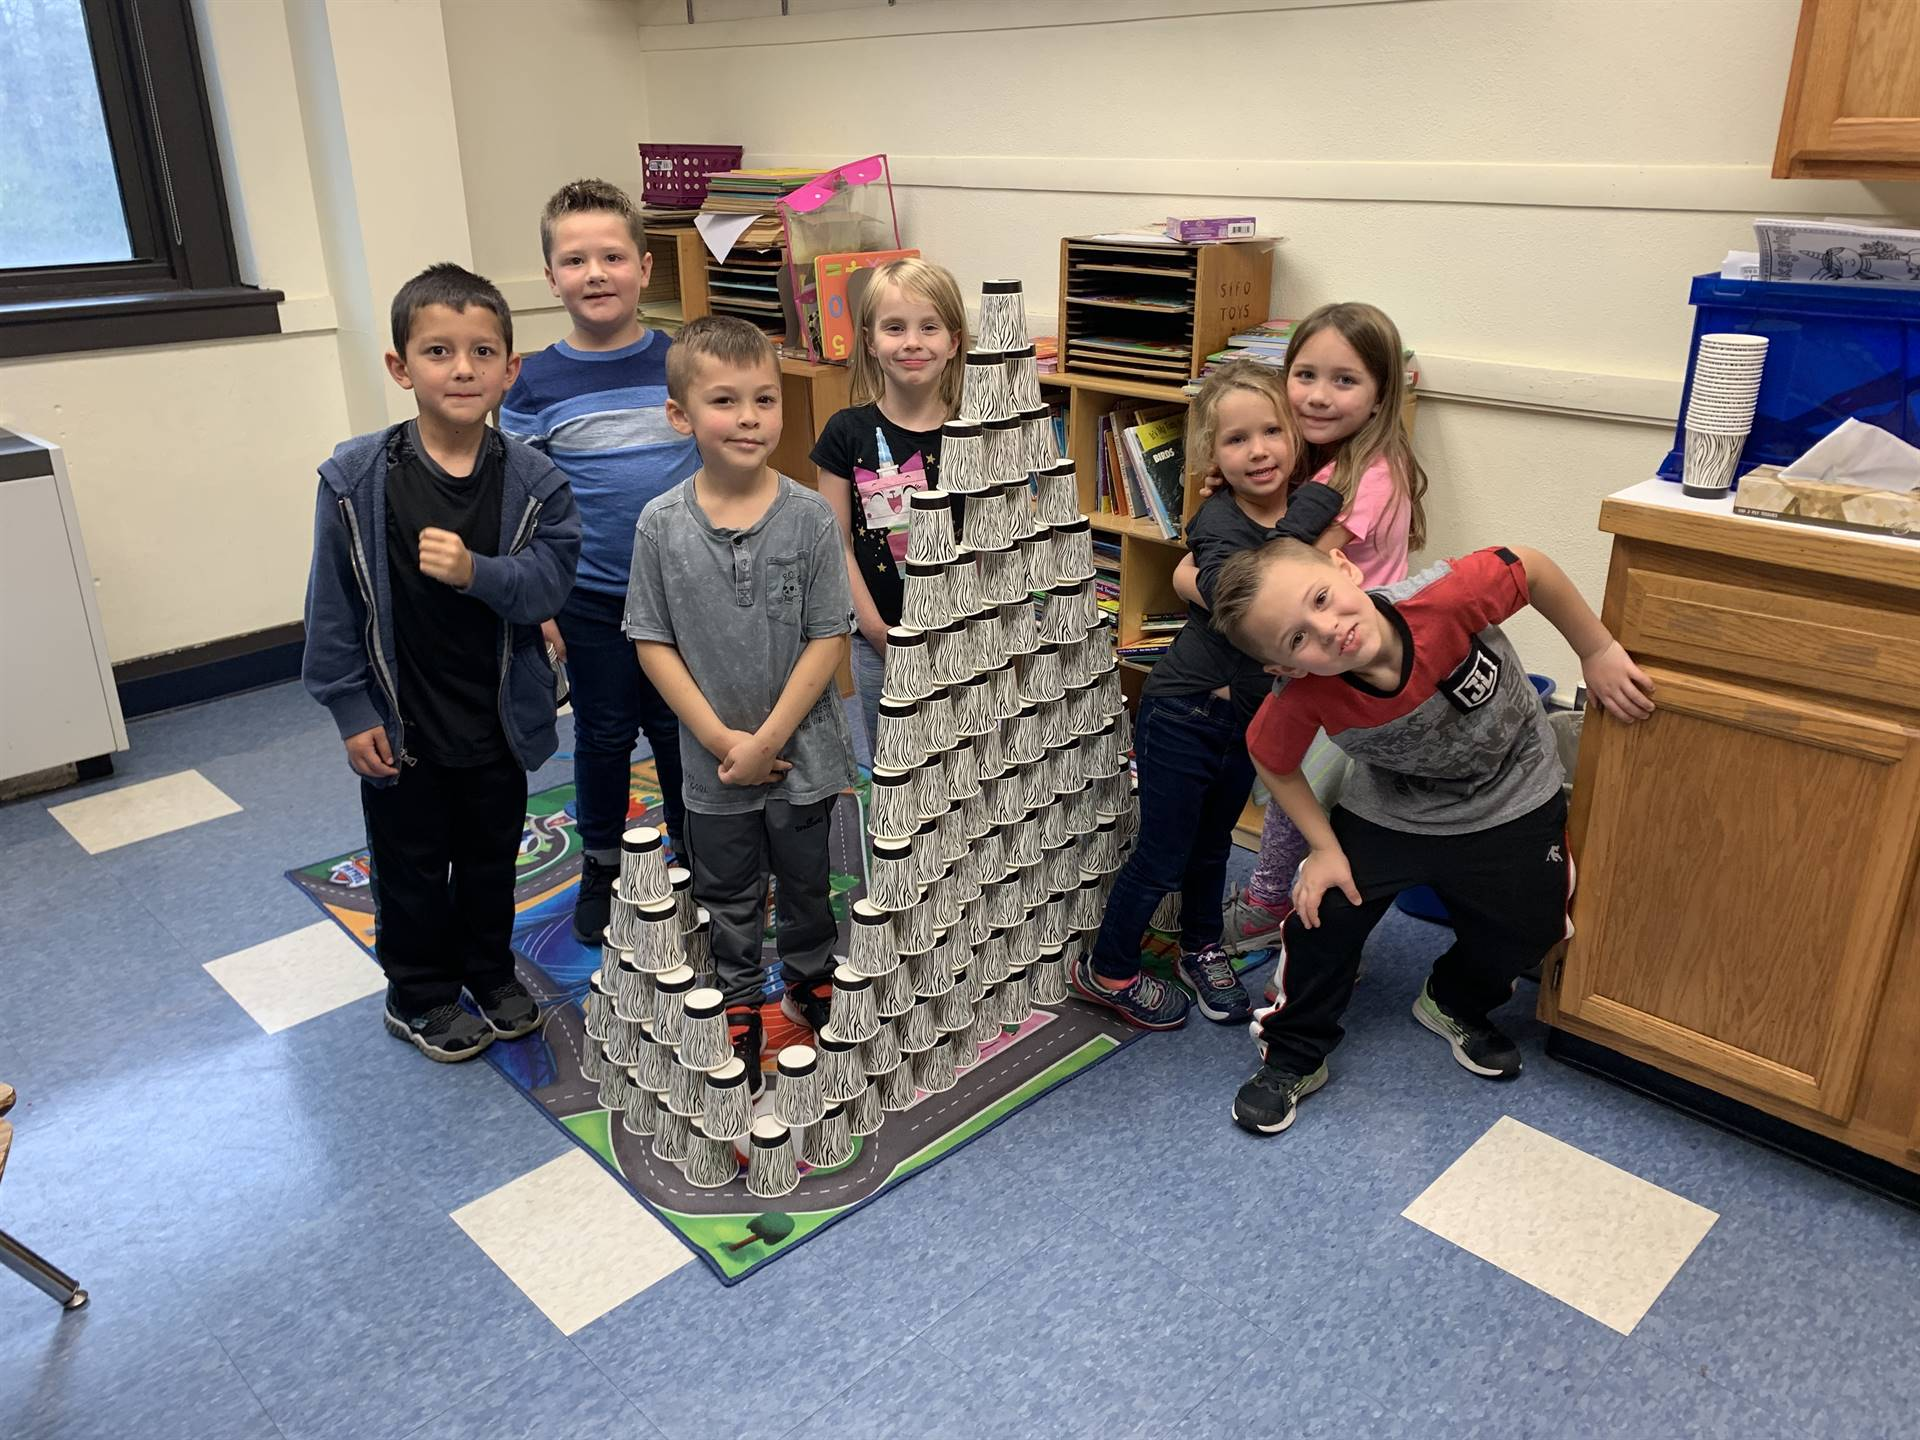 7 Students build with cups.